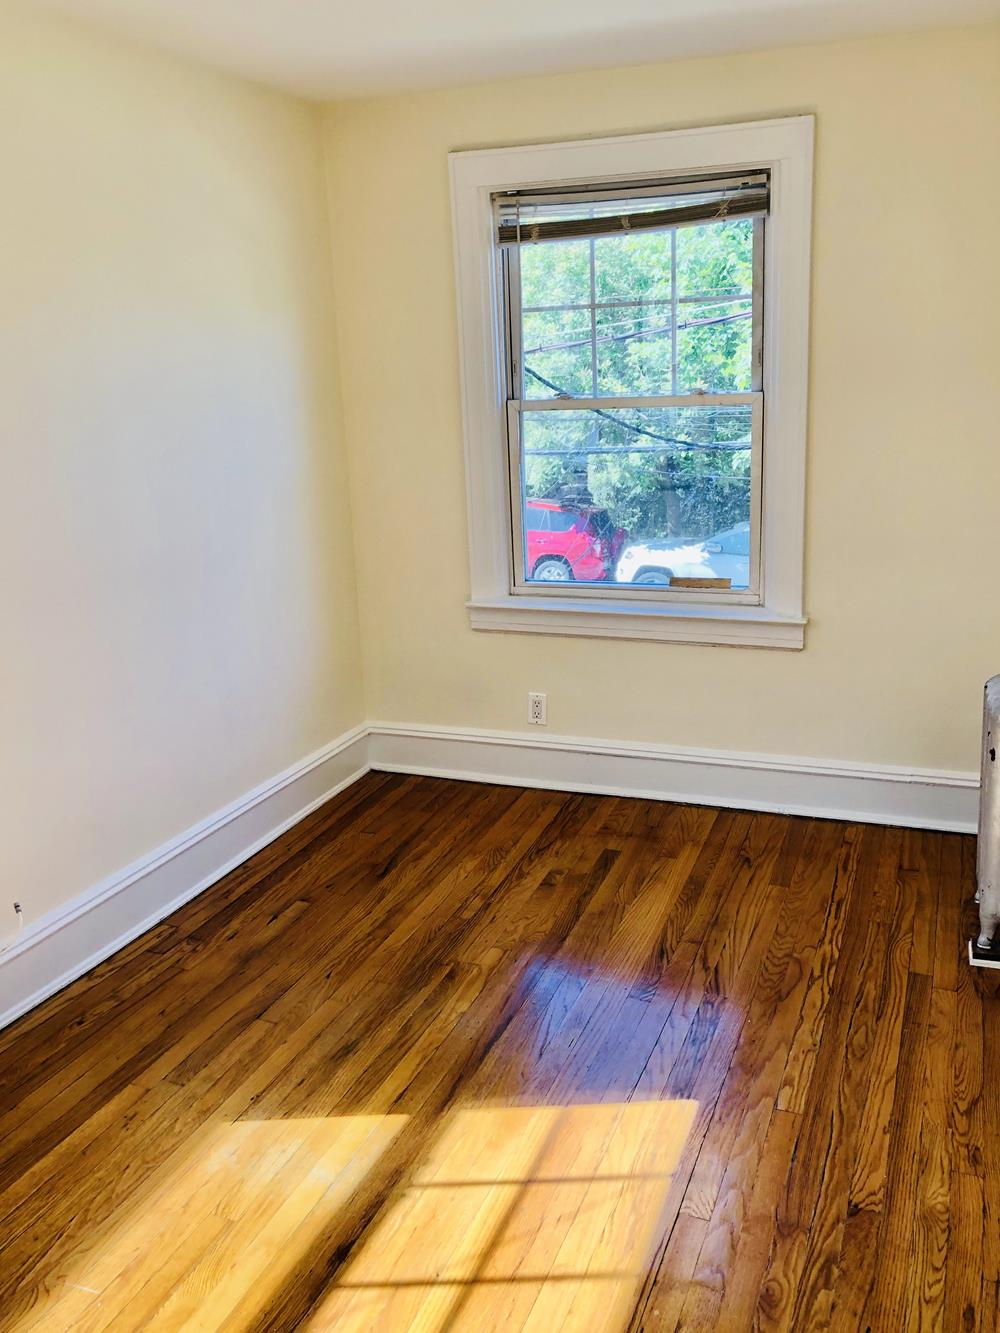 3-Bd. House with Fireplace, Deck and Yard on Cul-de-Sac